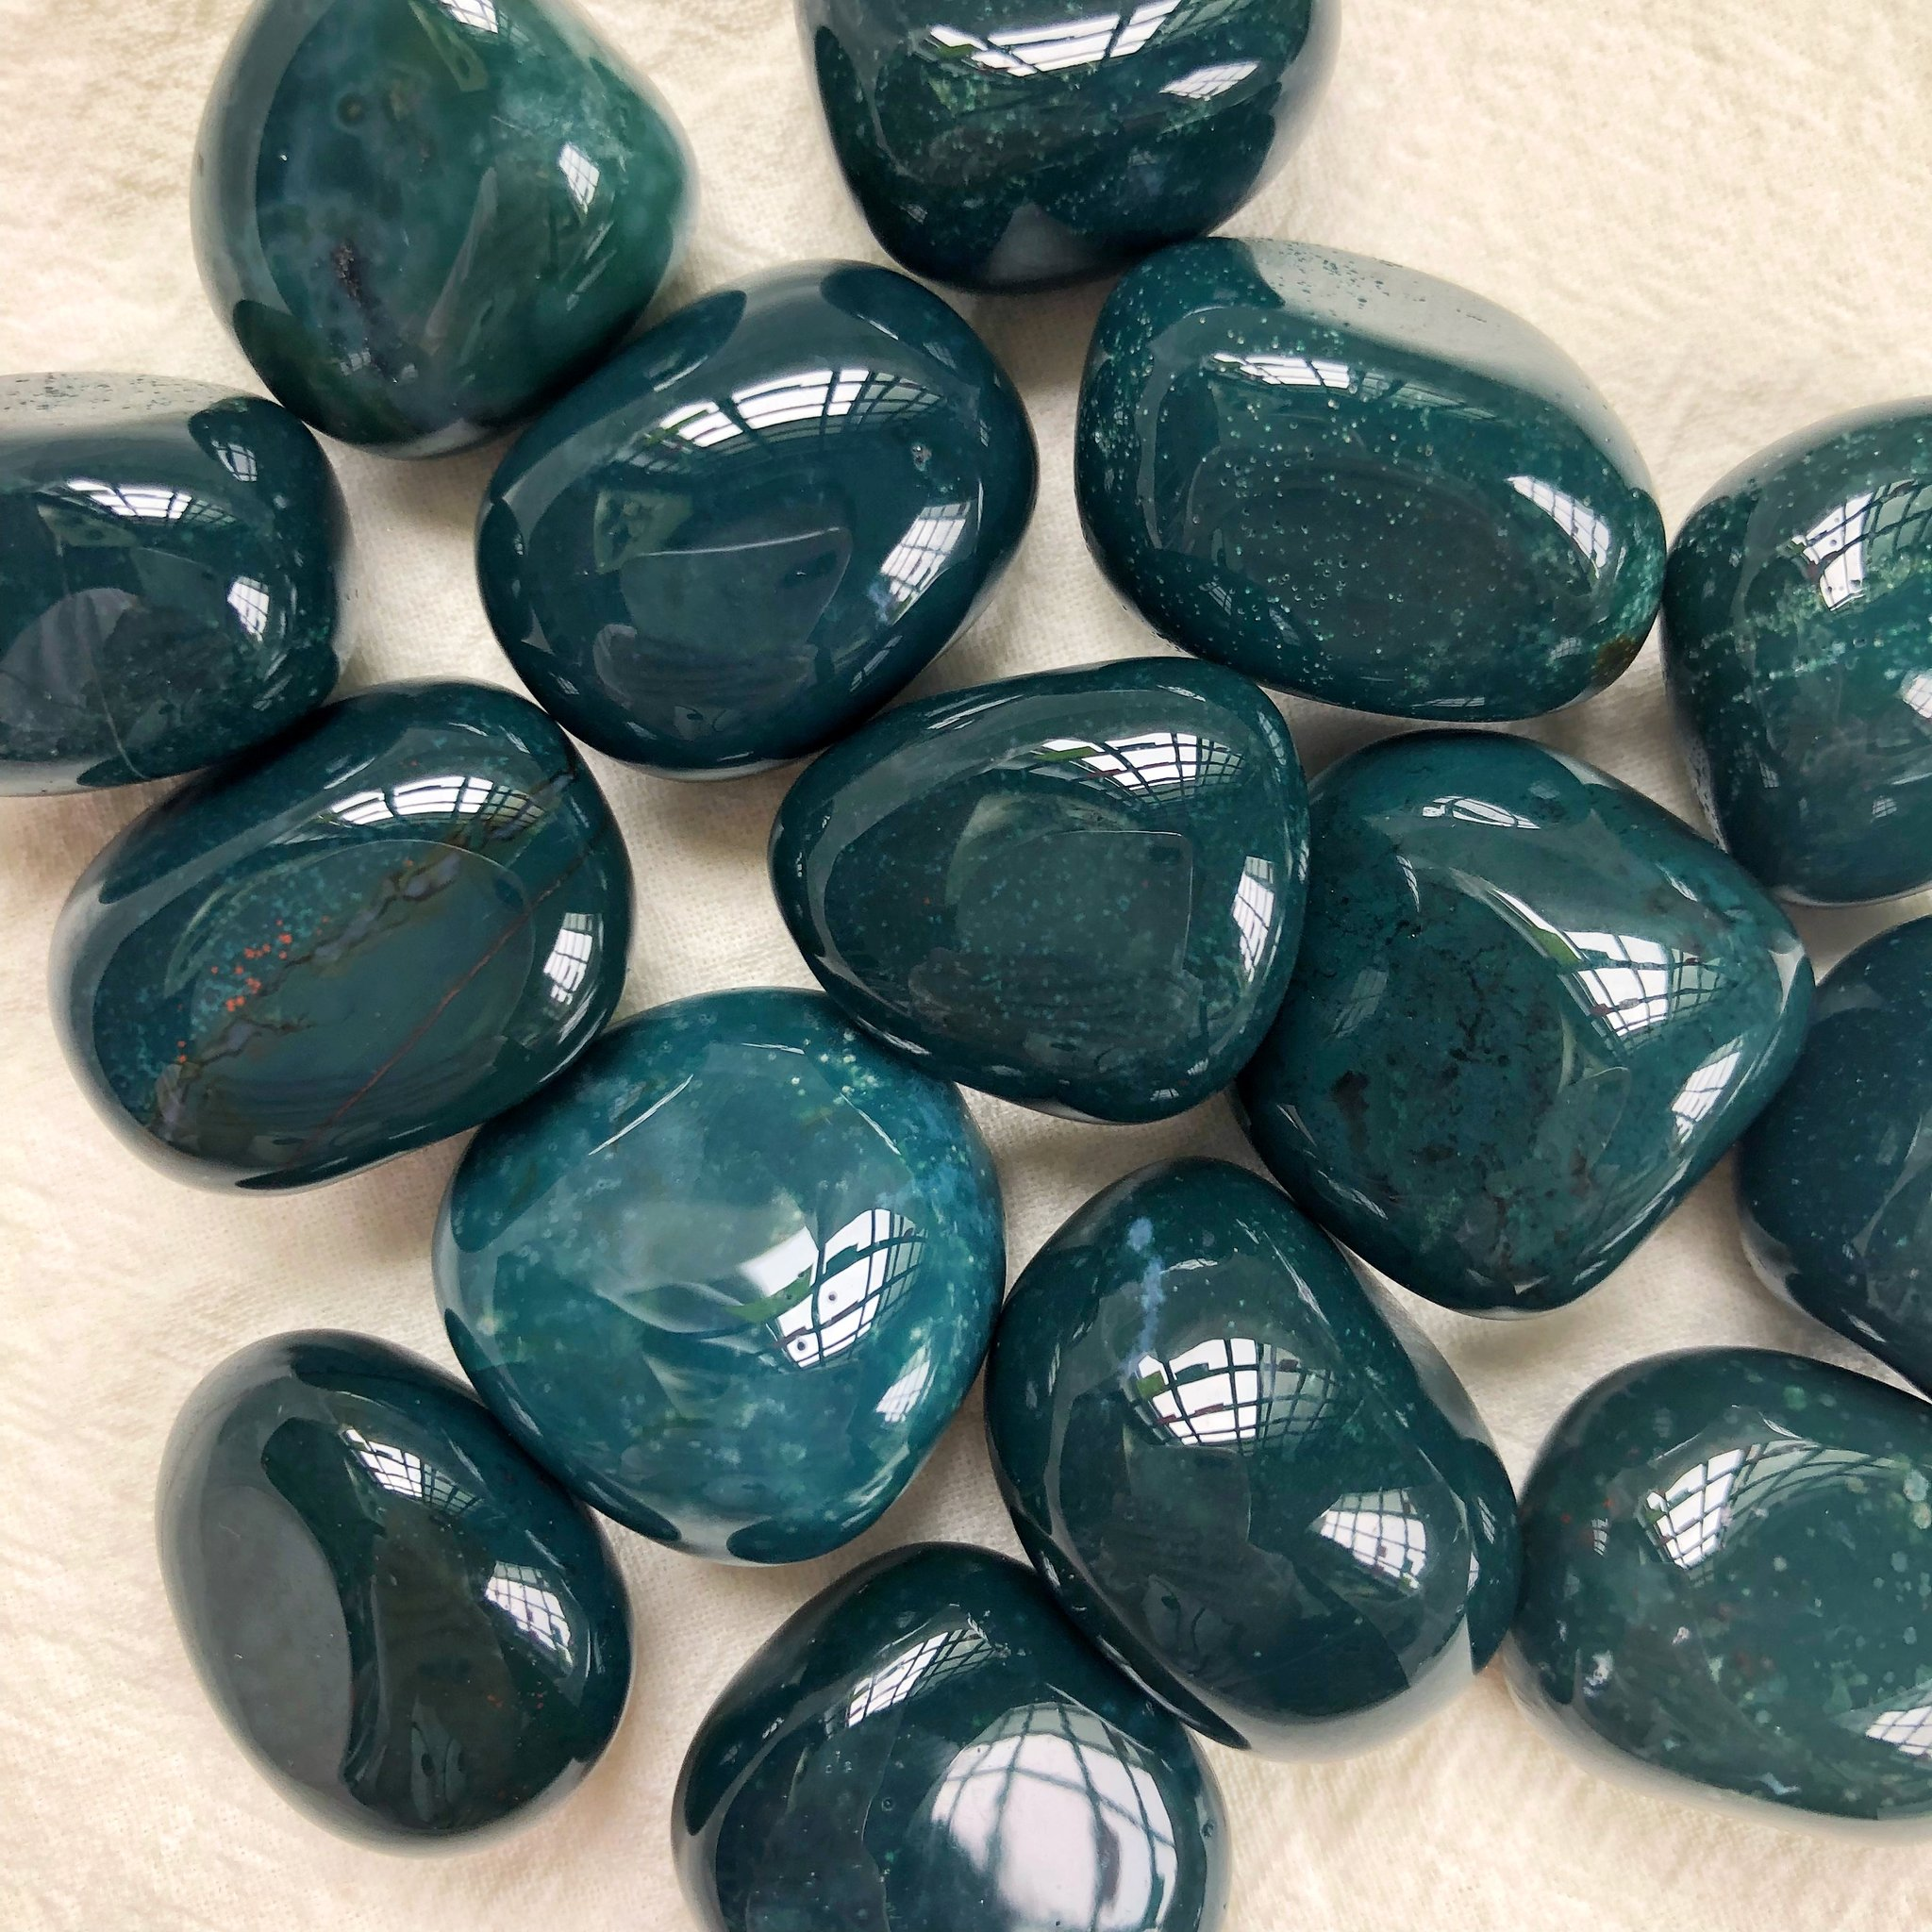 Green Jasper Meanings, Properties and Uses